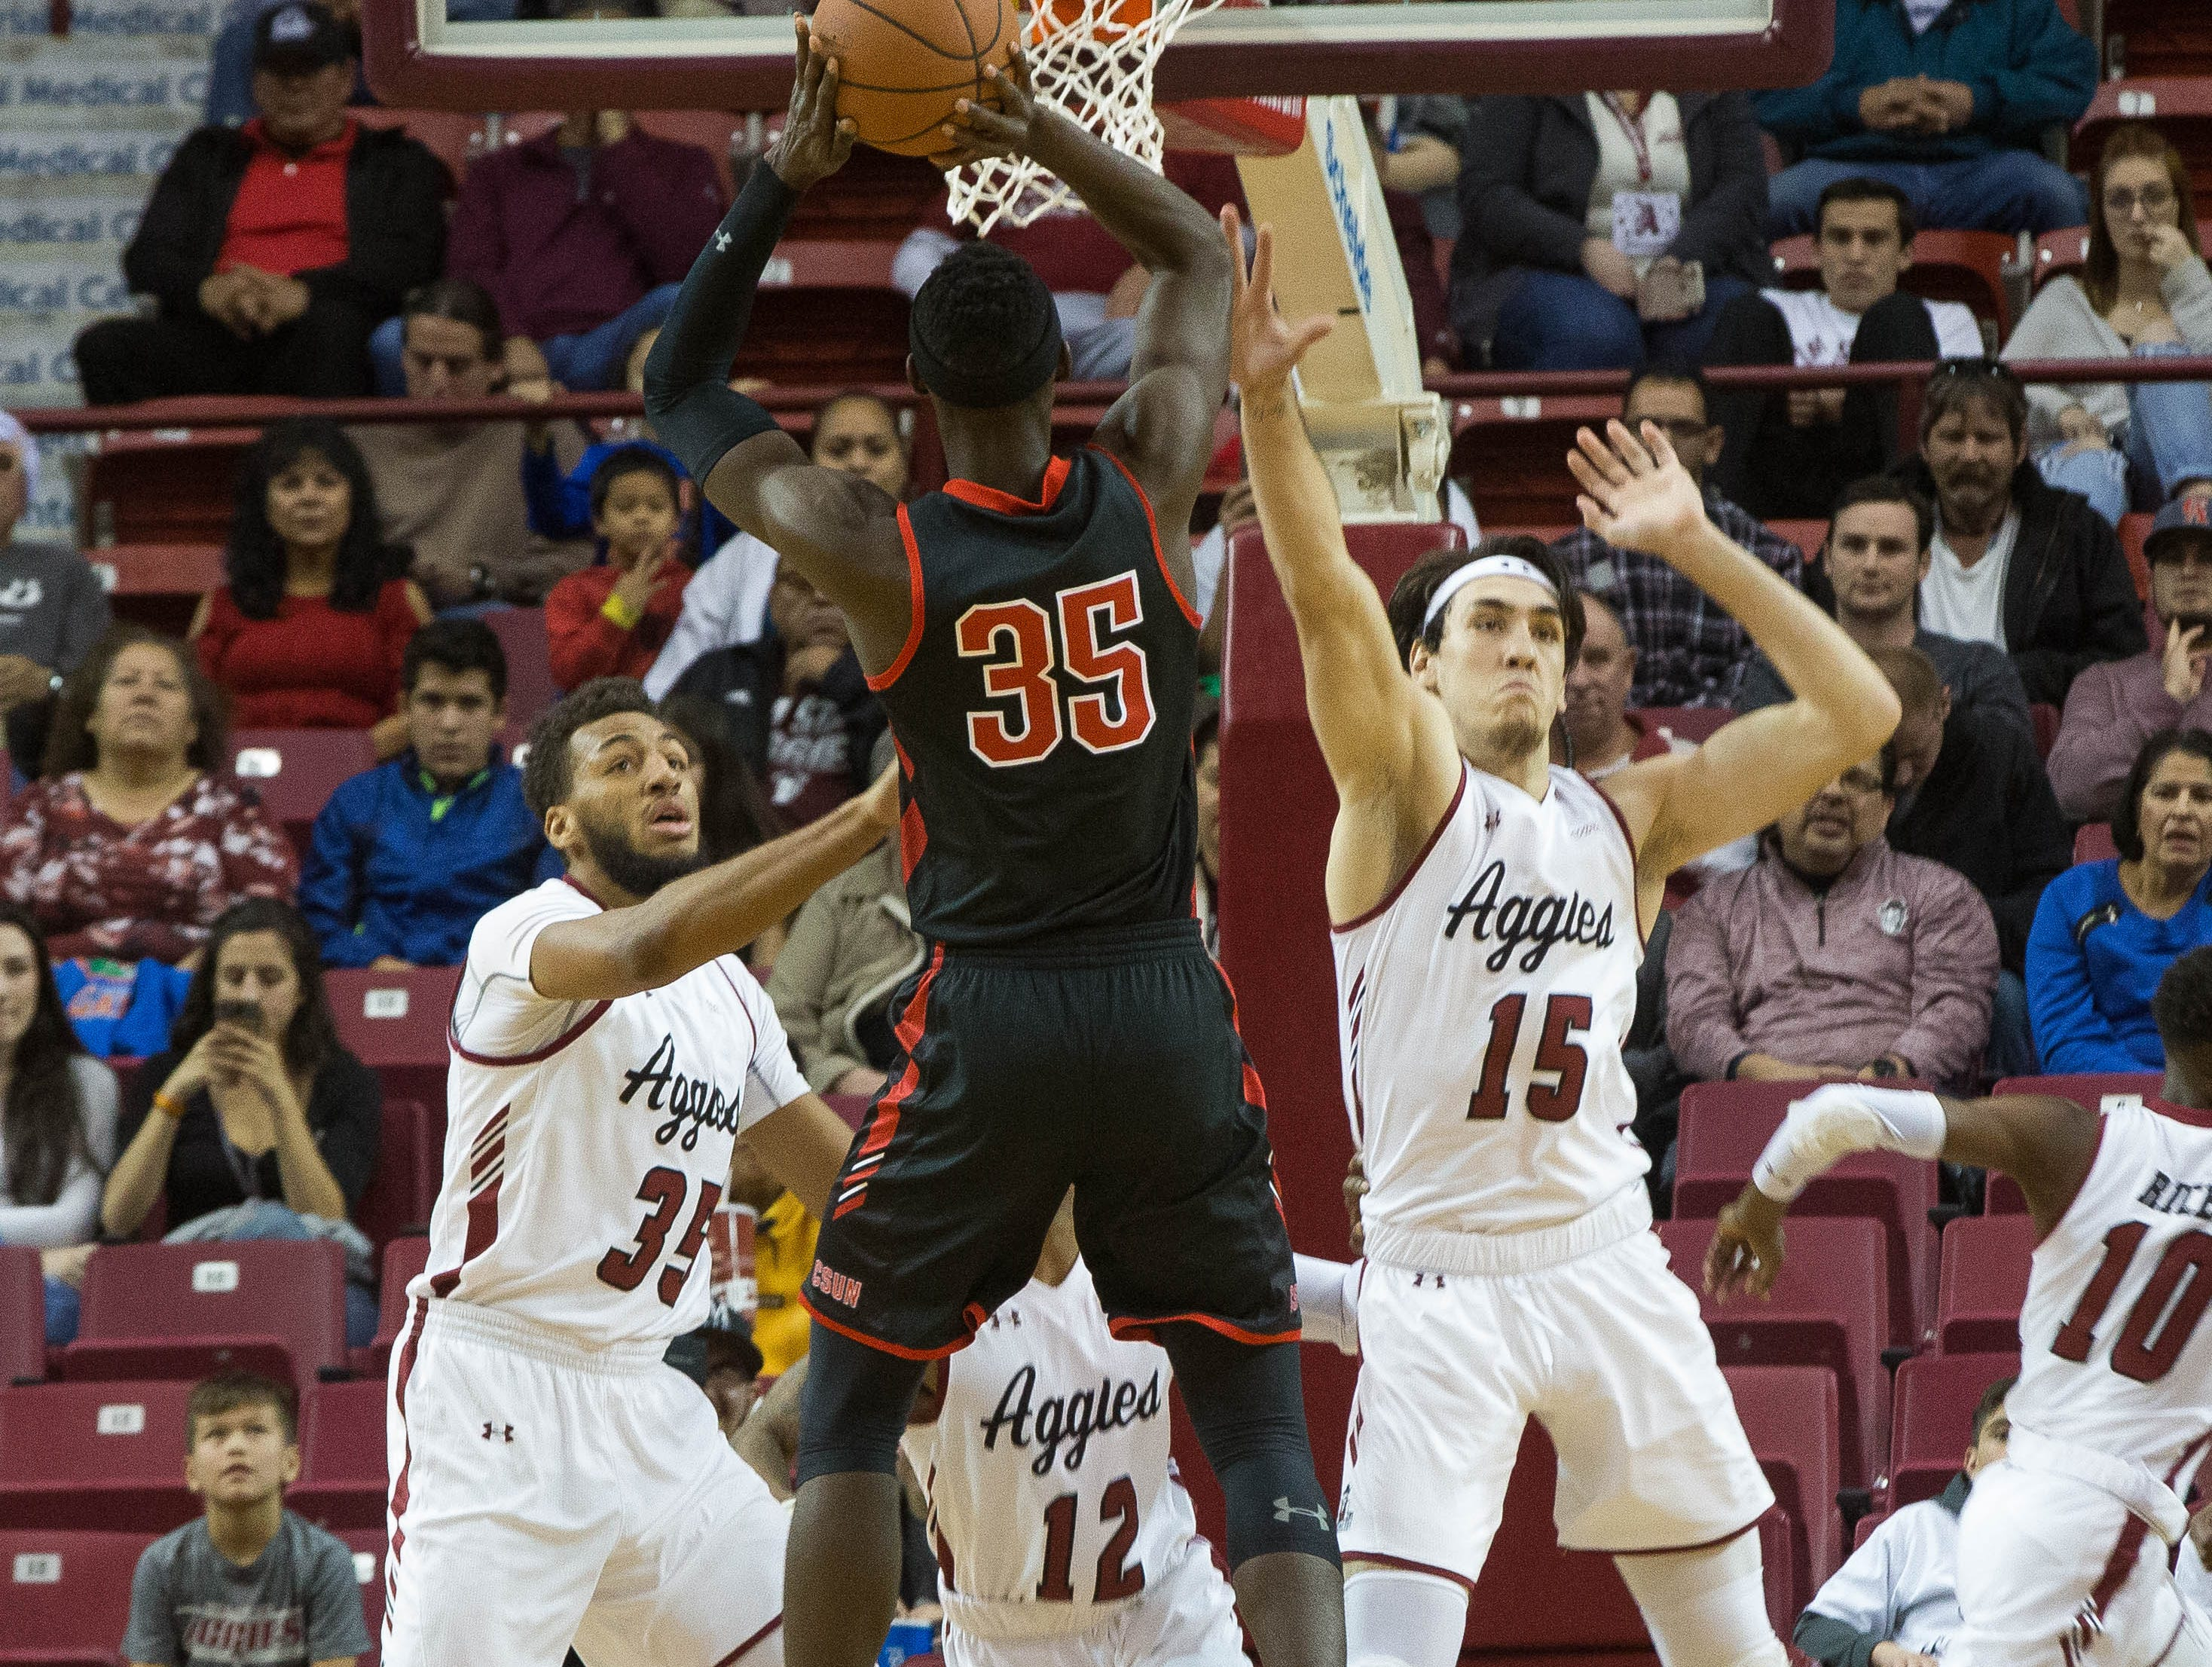 Aggies Johnny Mccants, Ivan Aurrecoechea, attempt to block California State University, Northridge's Lamine Diane, Wednesday December 19, 2018 at the Pan American Center.